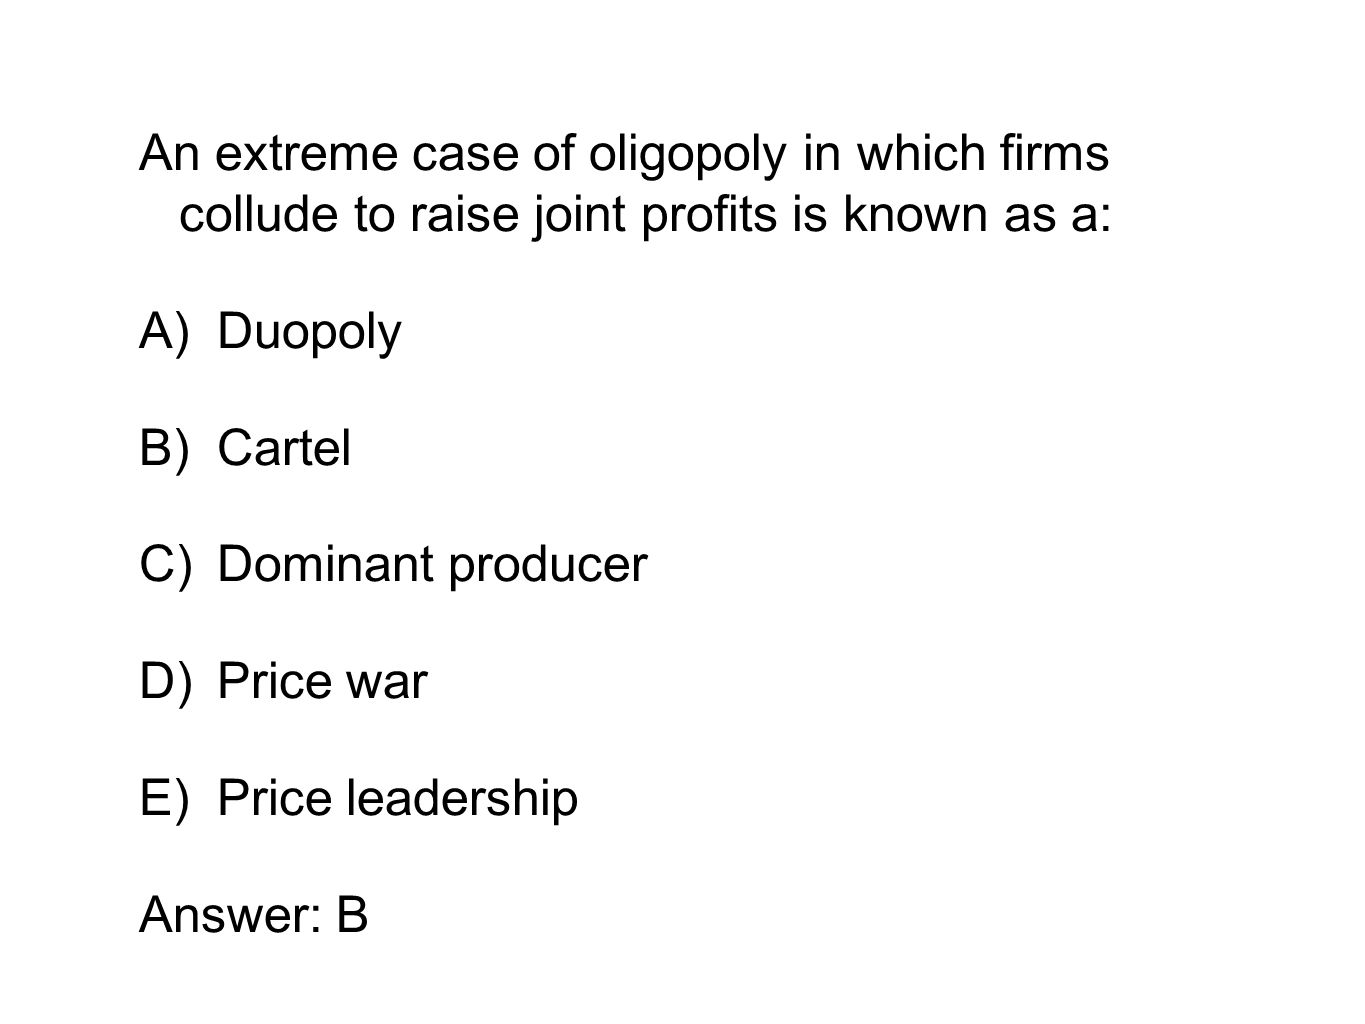 An extreme case of oligopoly in which firms collude to raise joint profits is known as a: